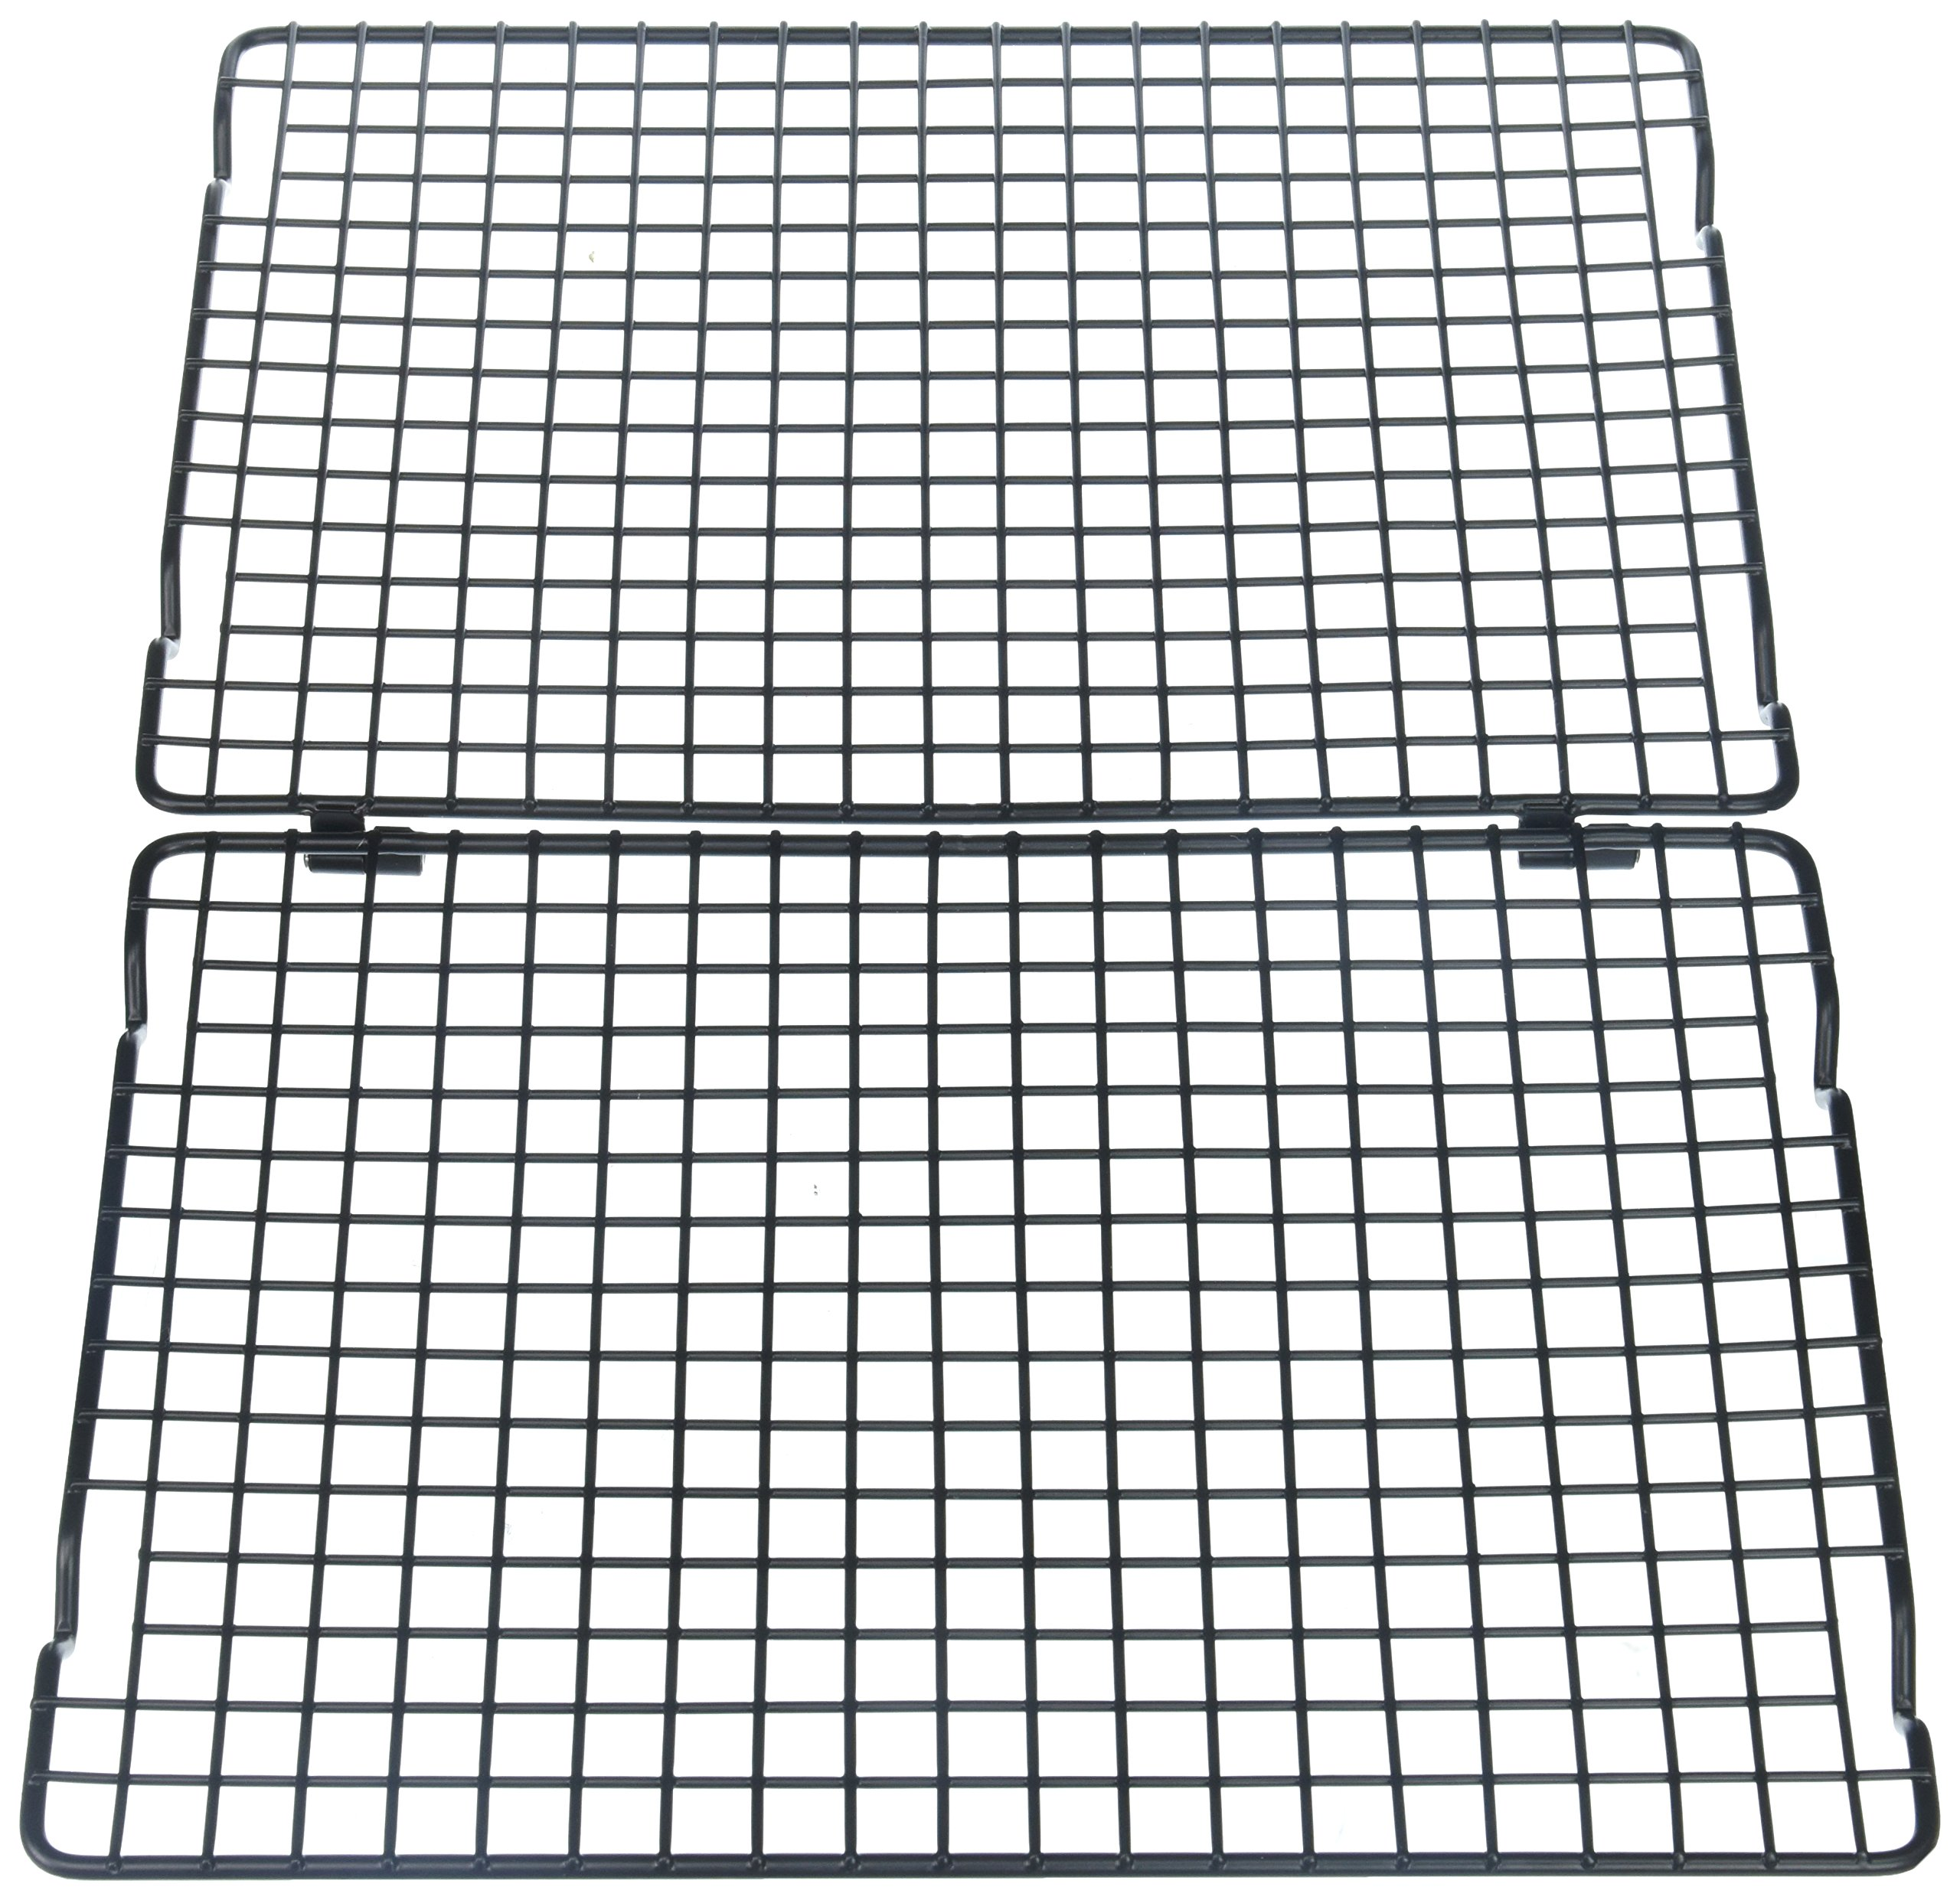 Kaiser 769462 17.91'' x 11.81'' Foldable Cooling Rack, Silver by Kaiser (Image #2)